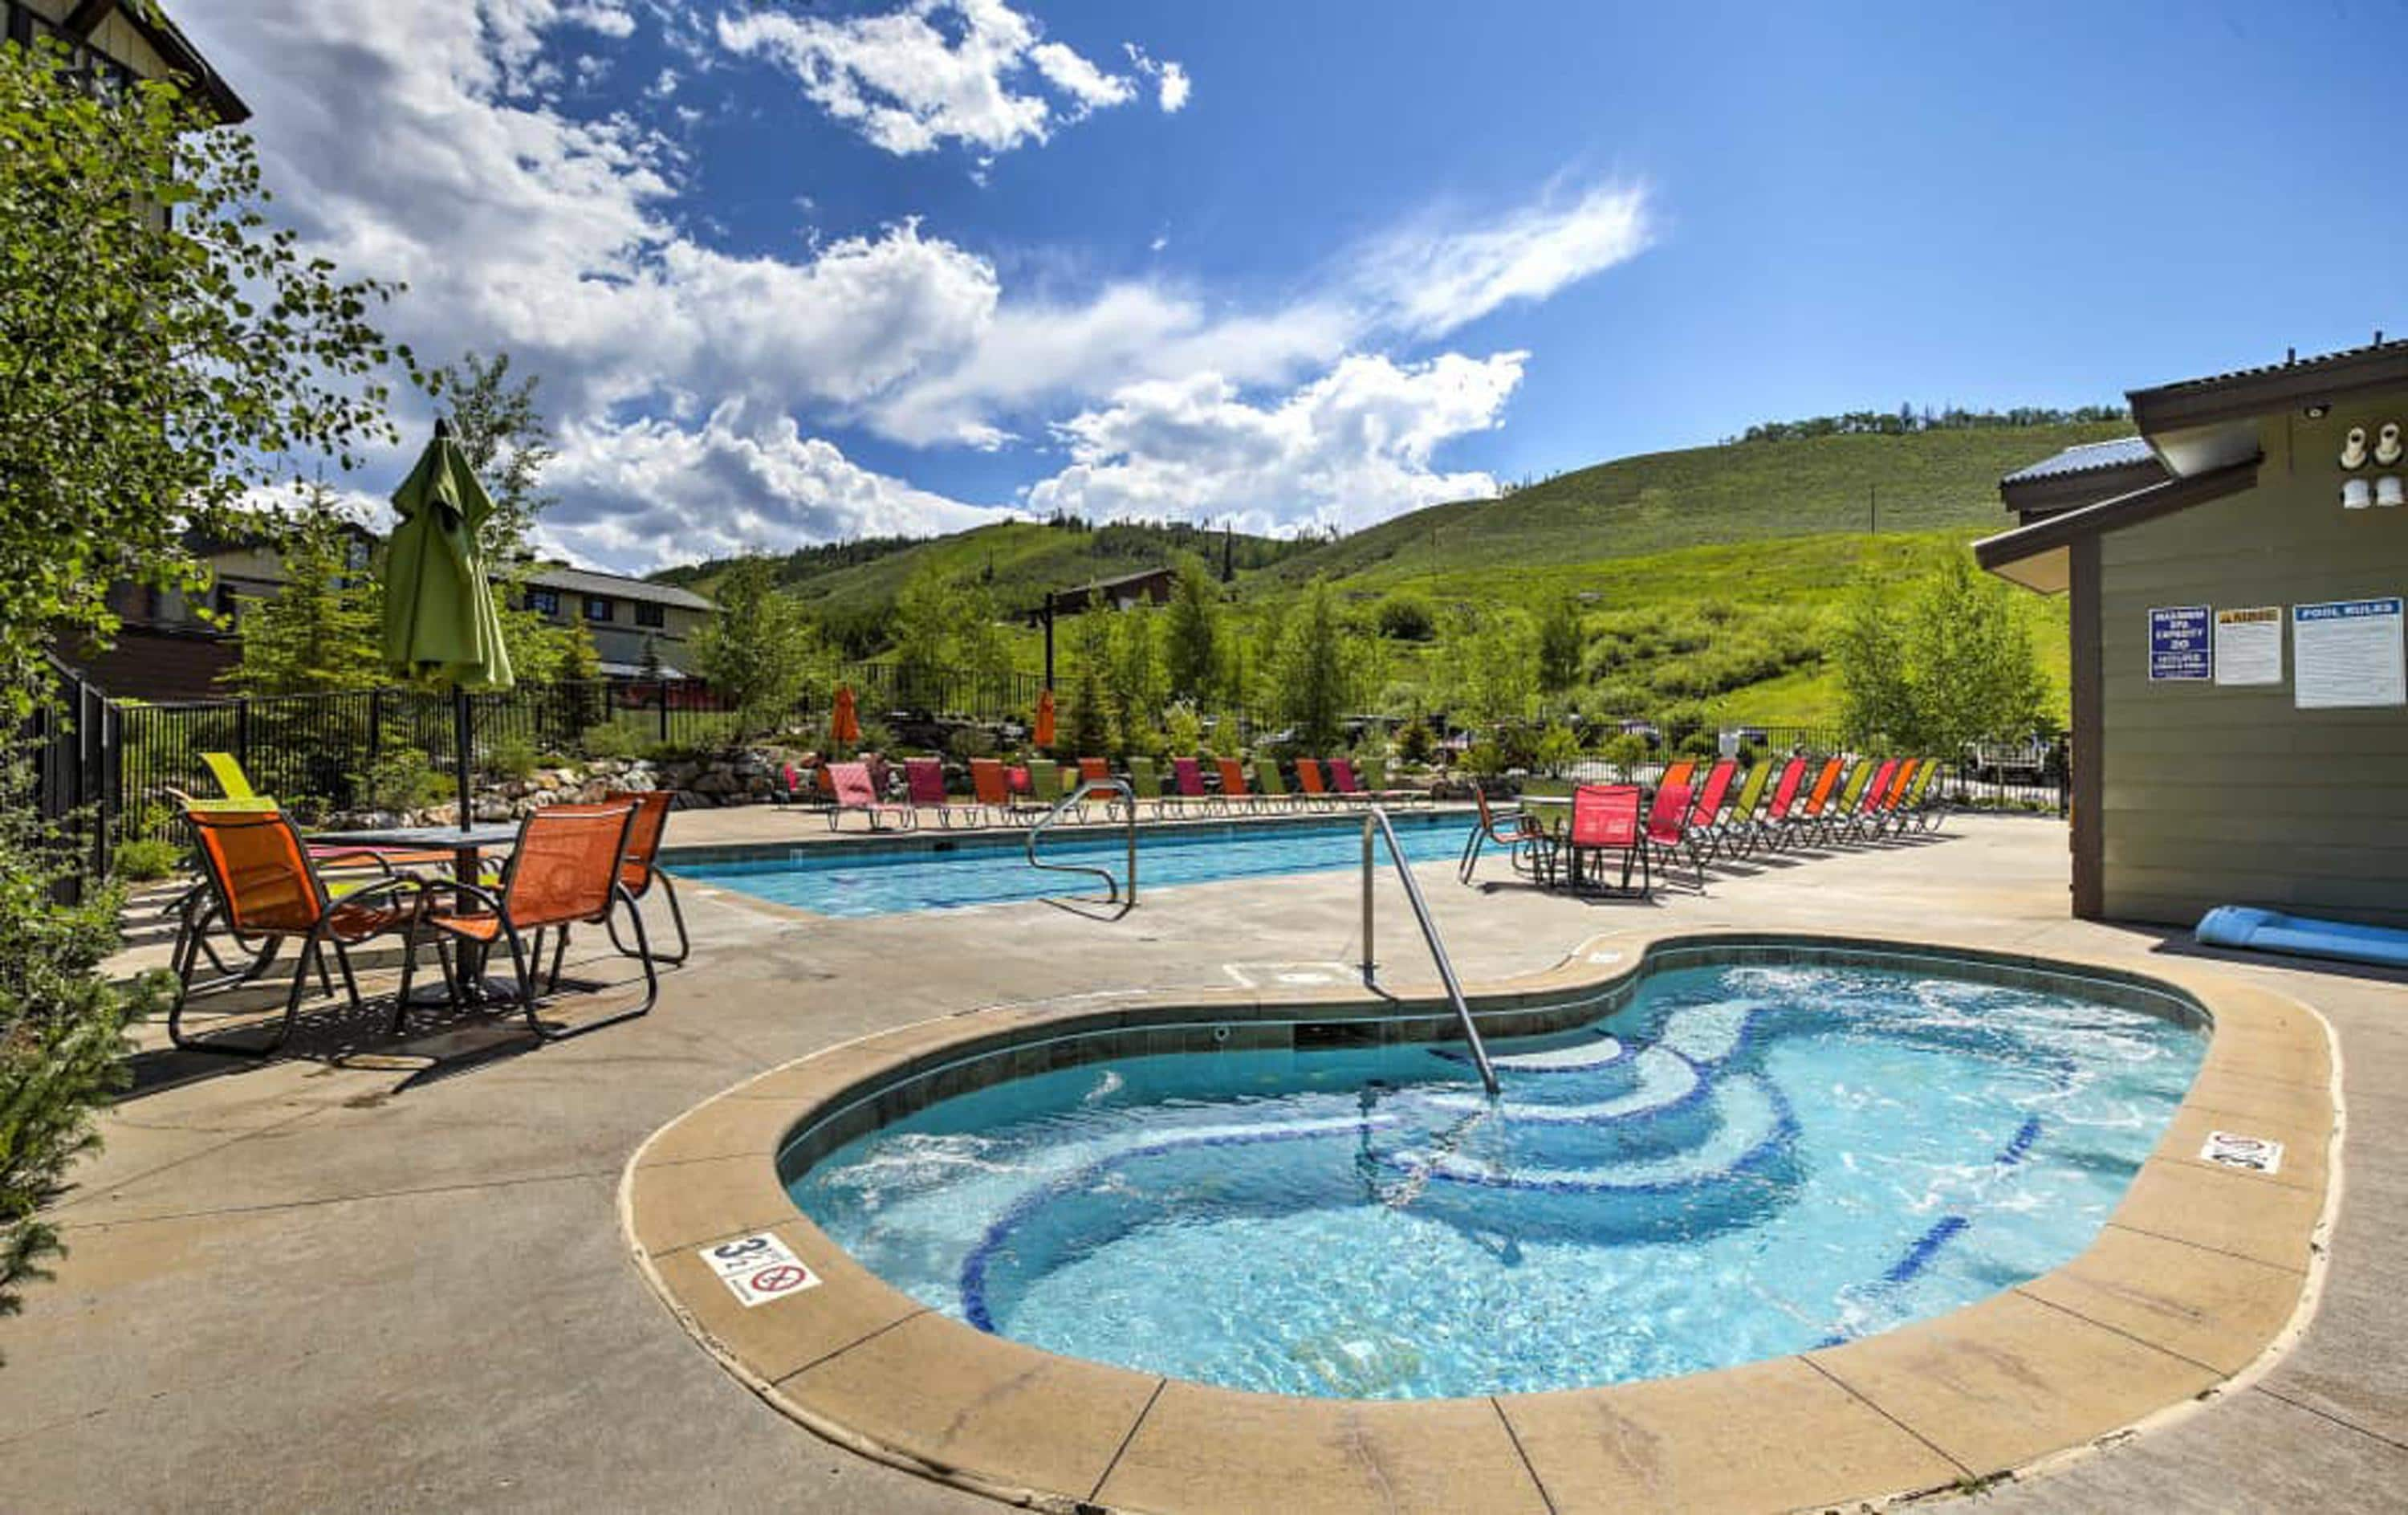 The Granby Ranch amenities include a large pool and hot tub.